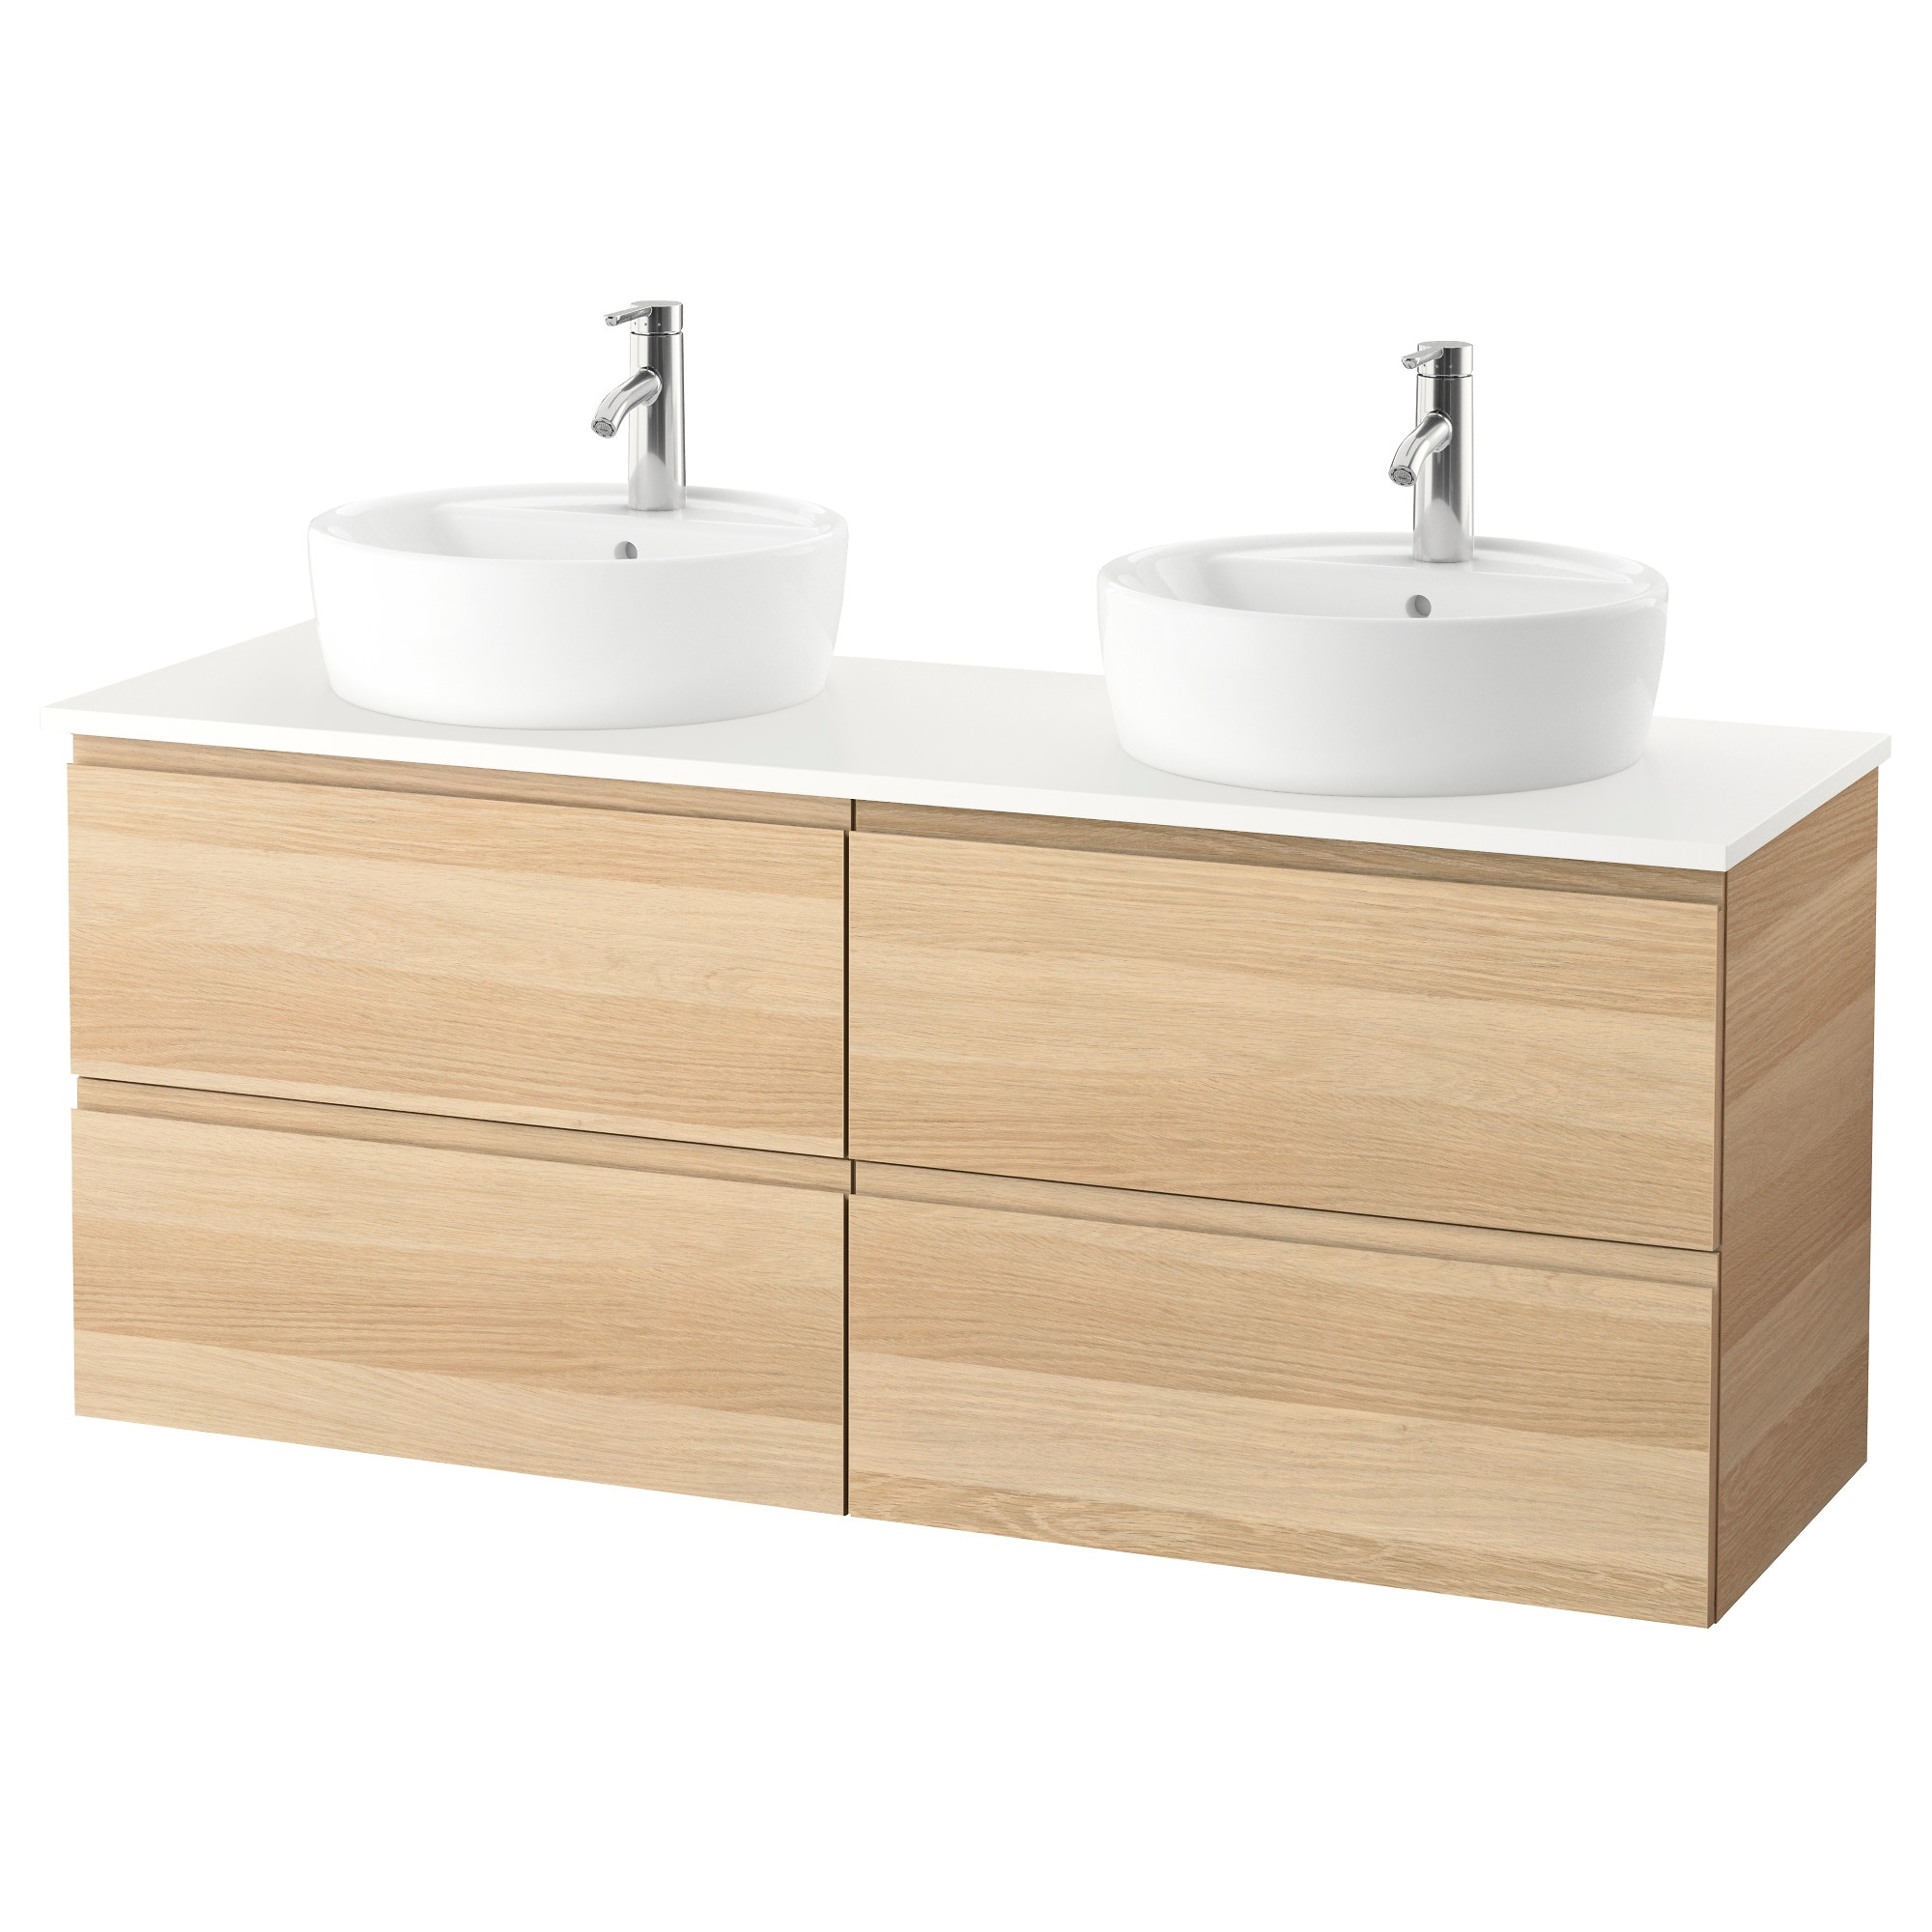 Meuble sous vasque arrondi beautiful godmorgon tolken for Meuble lavabo double vasque